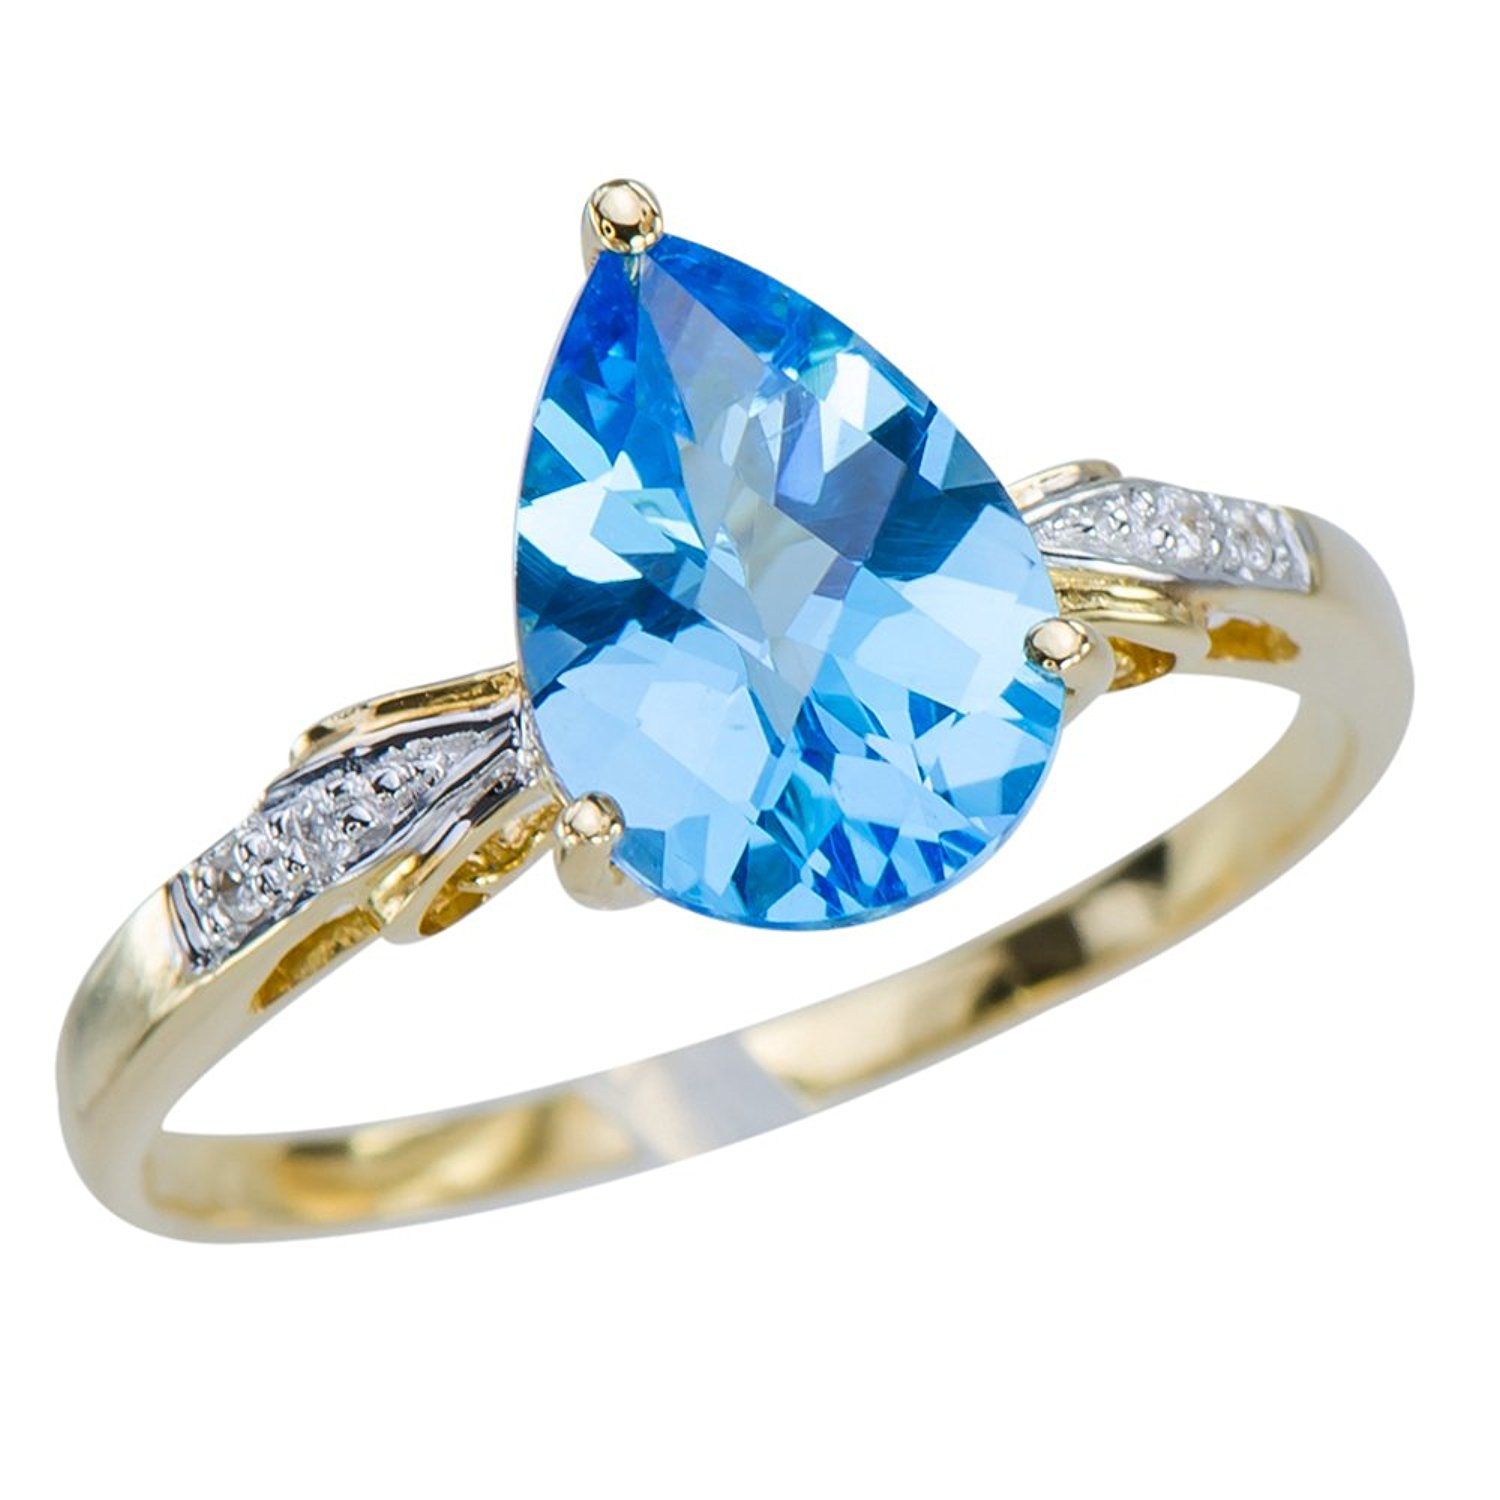 Caratera Fine Gold Jewelry Vivid Womens Natural 2.3CT Swiss Blue Topaz 18K Yellow Gold Wedding Engagement Promise Diamond Ring